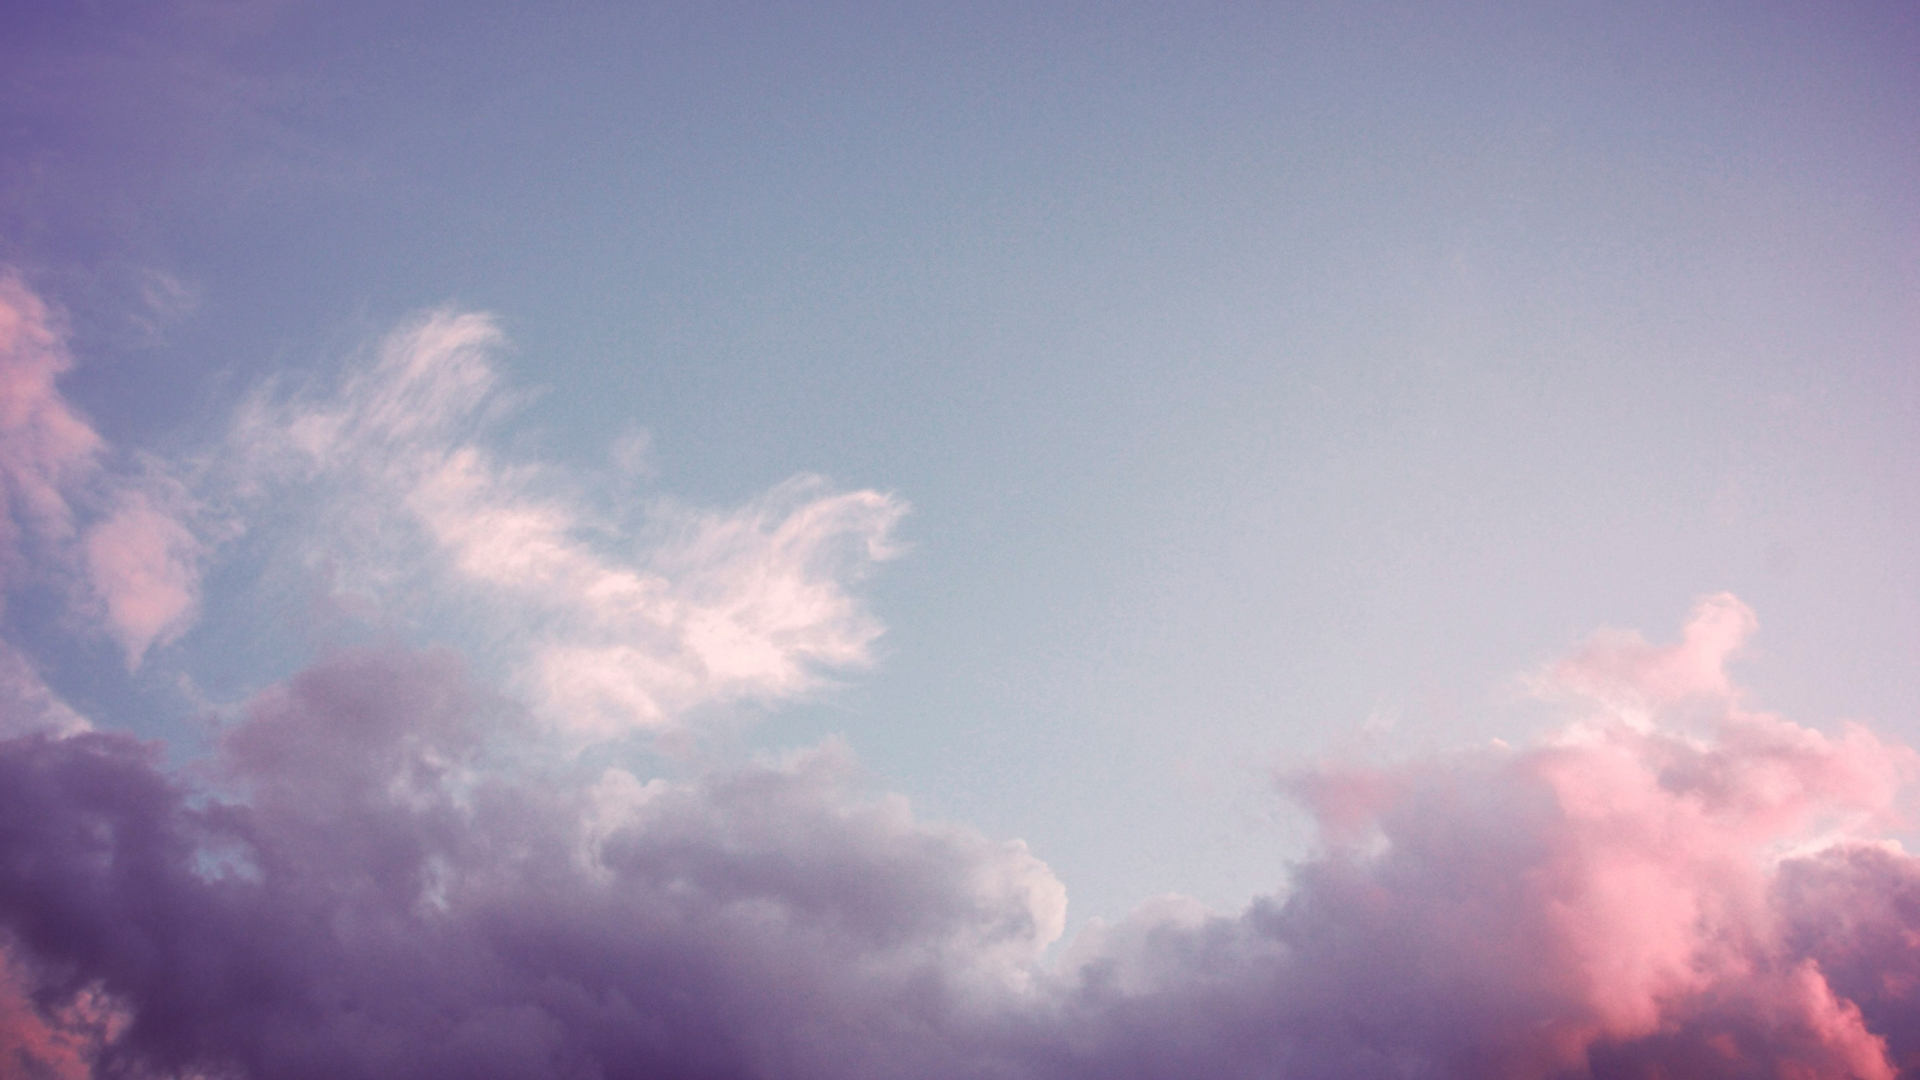 Sky Clouds Wallpaper